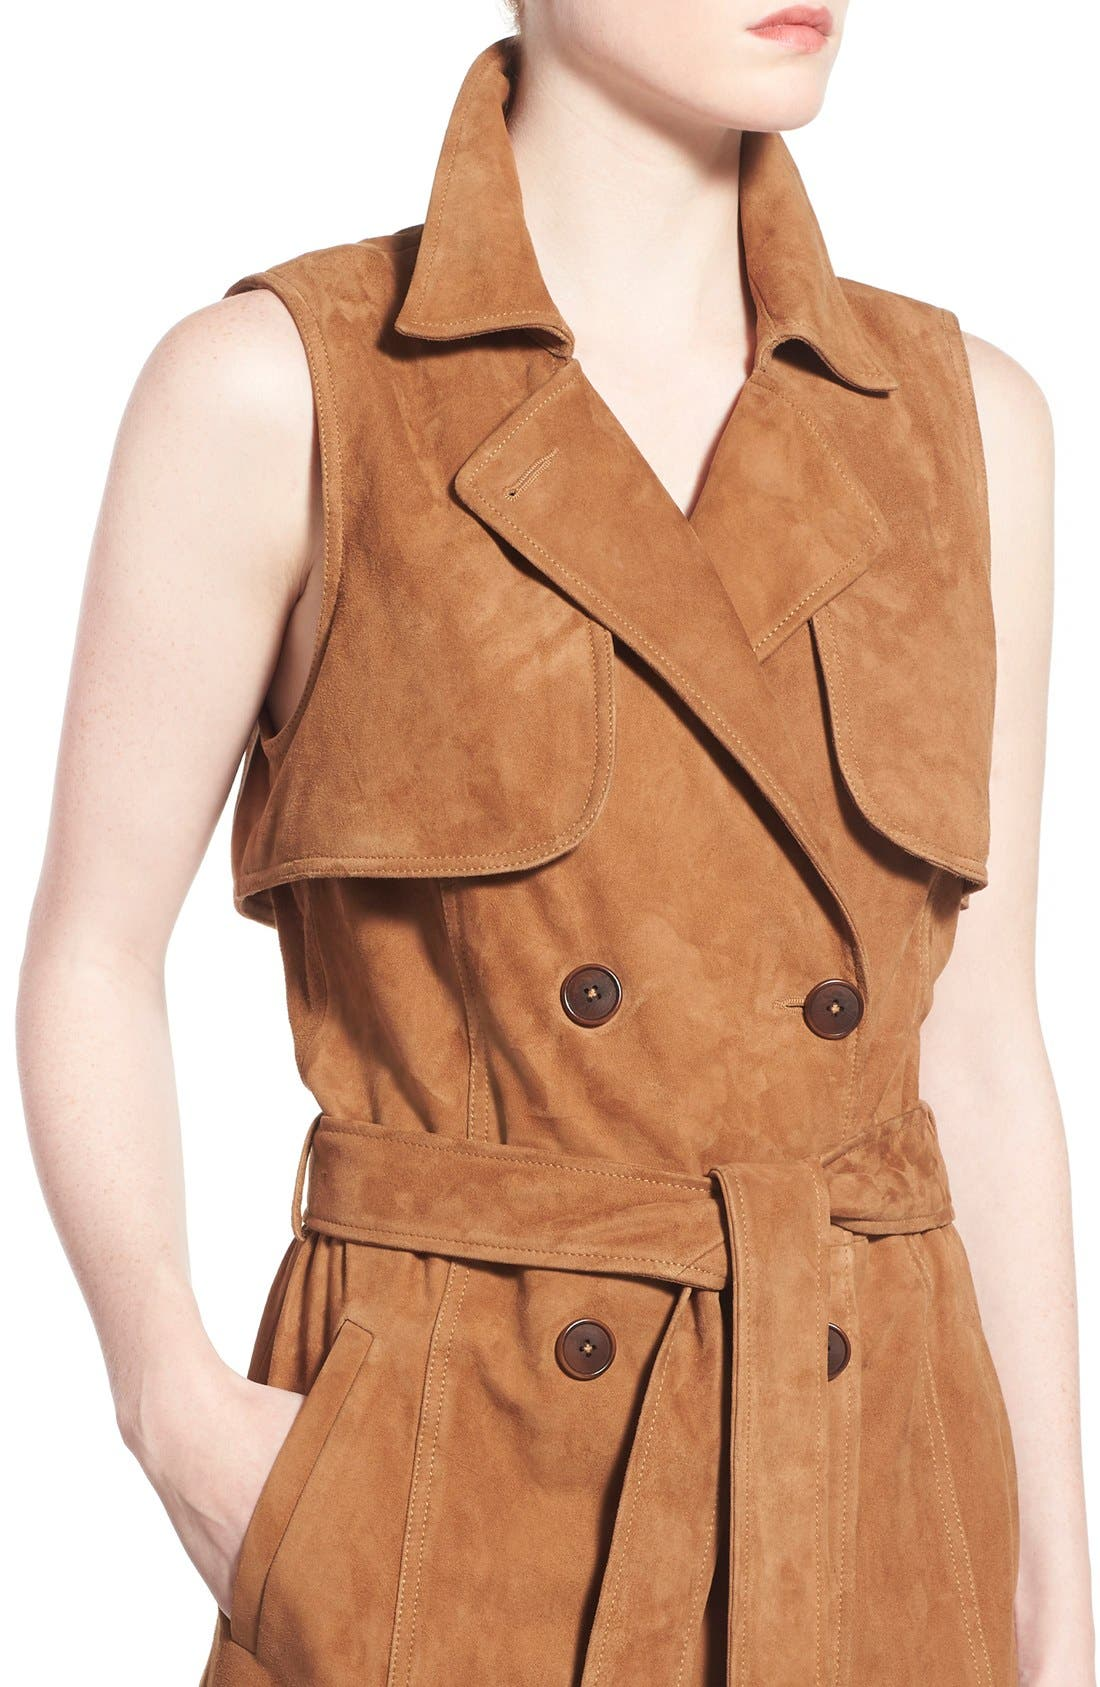 OLIVIA PALERMO + CHELSEA28,                             Sleeveless Suede Trench Dress,                             Alternate thumbnail 2, color,                             235